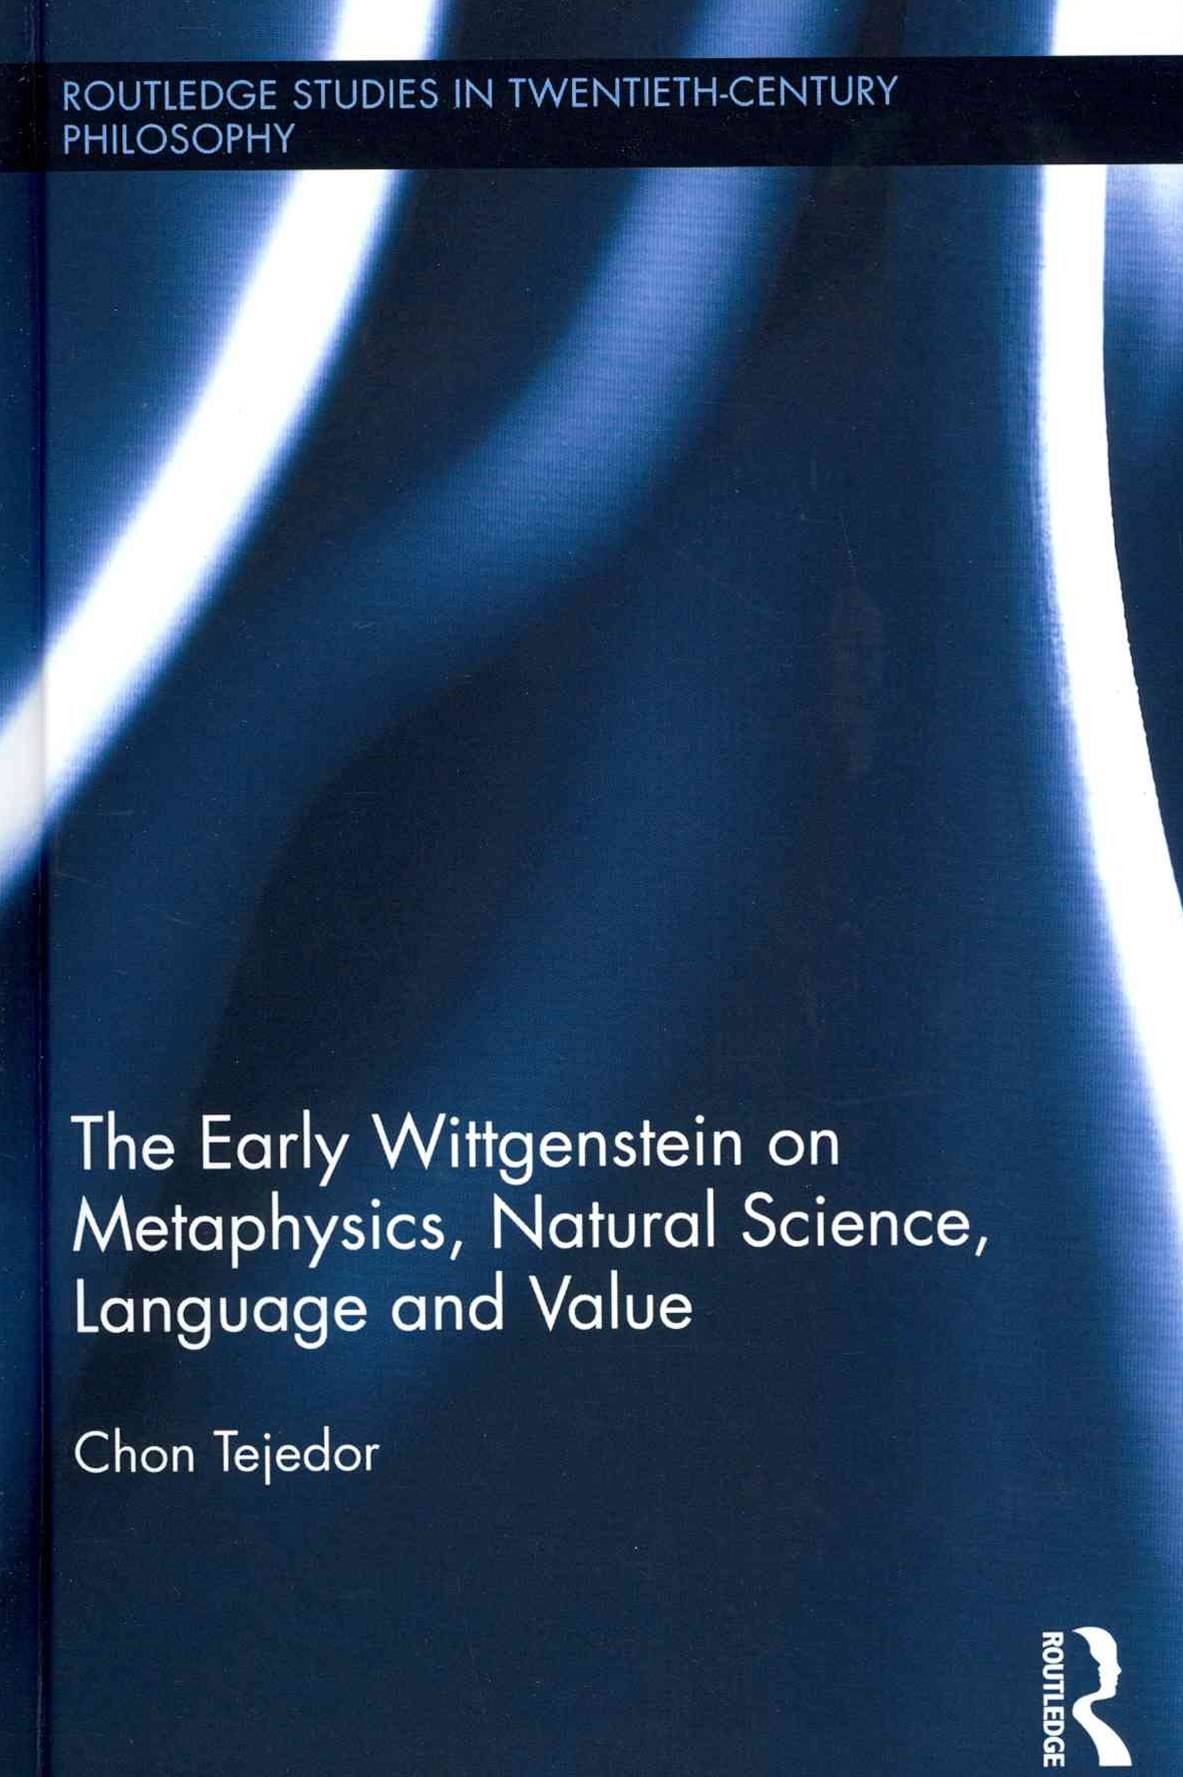 Early Wittgenstein on Metaphysics, Natural Science, Language and Value